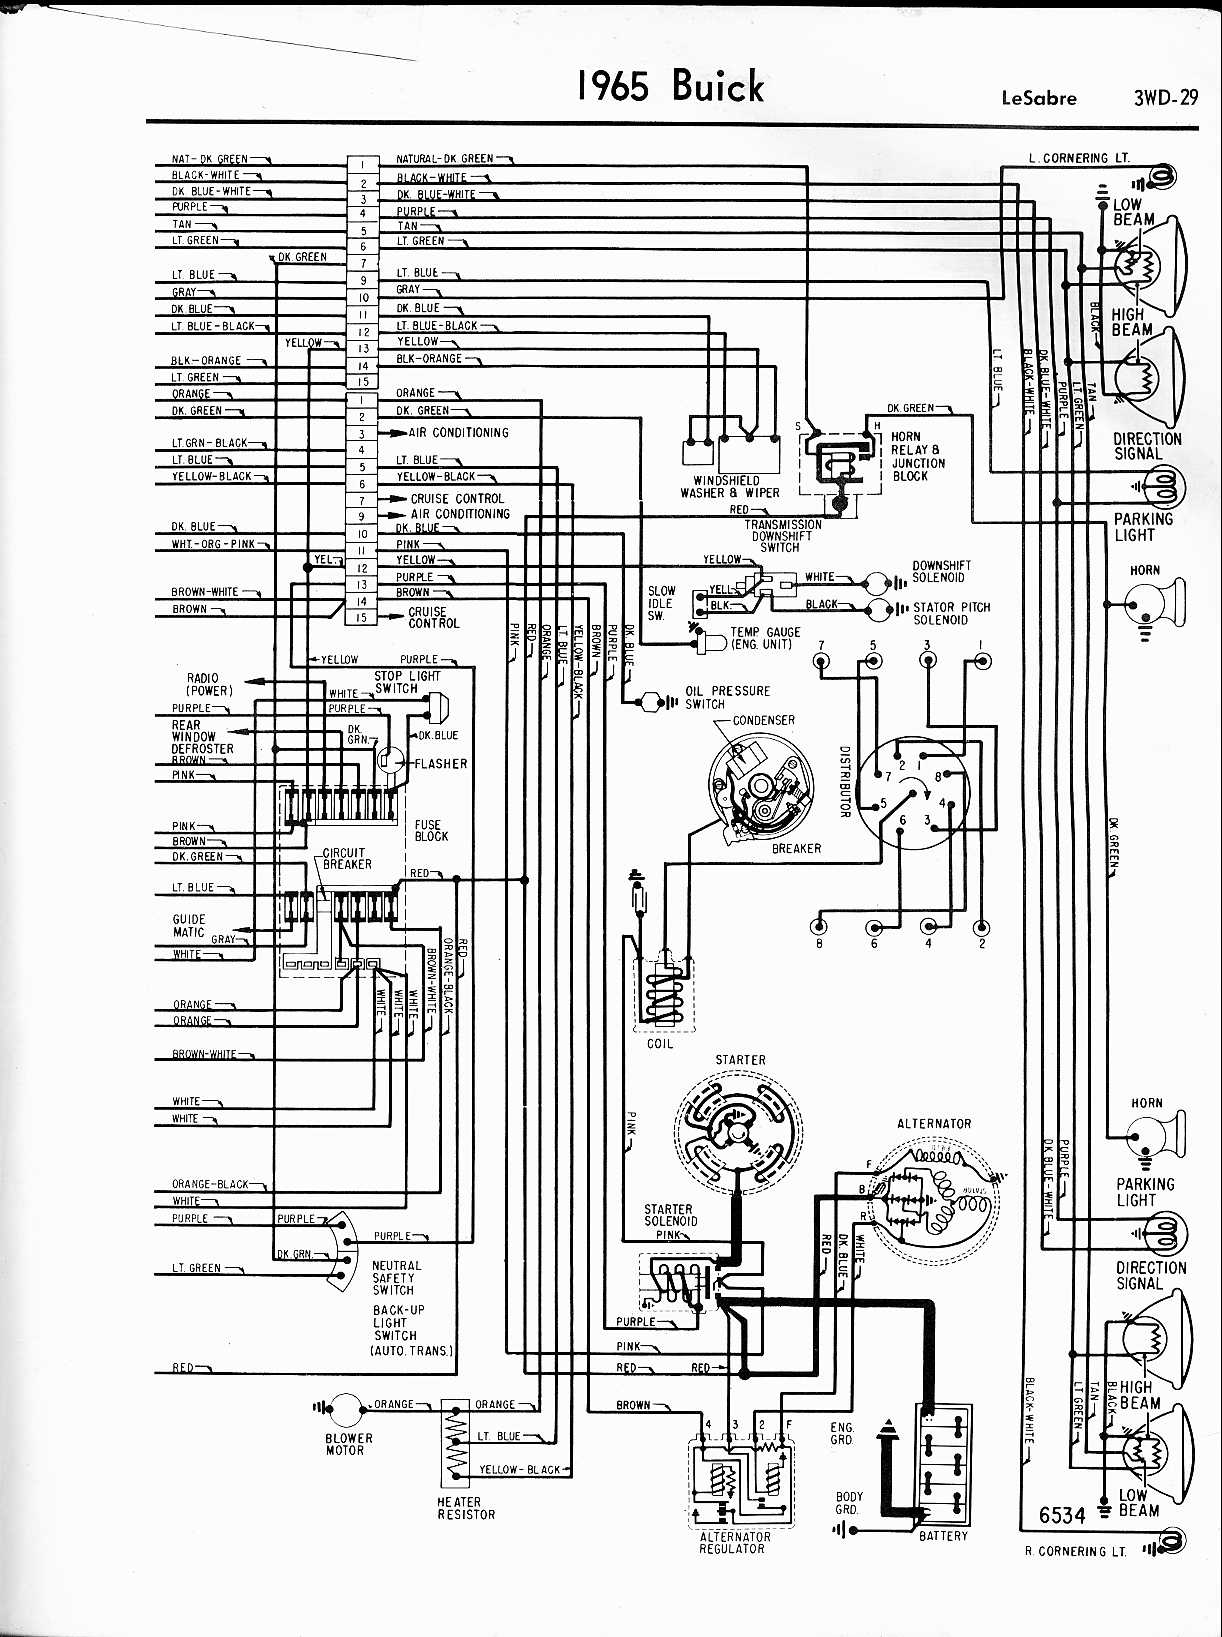 2007 Accord Alternator Wiring Diagram | Wiring Liry